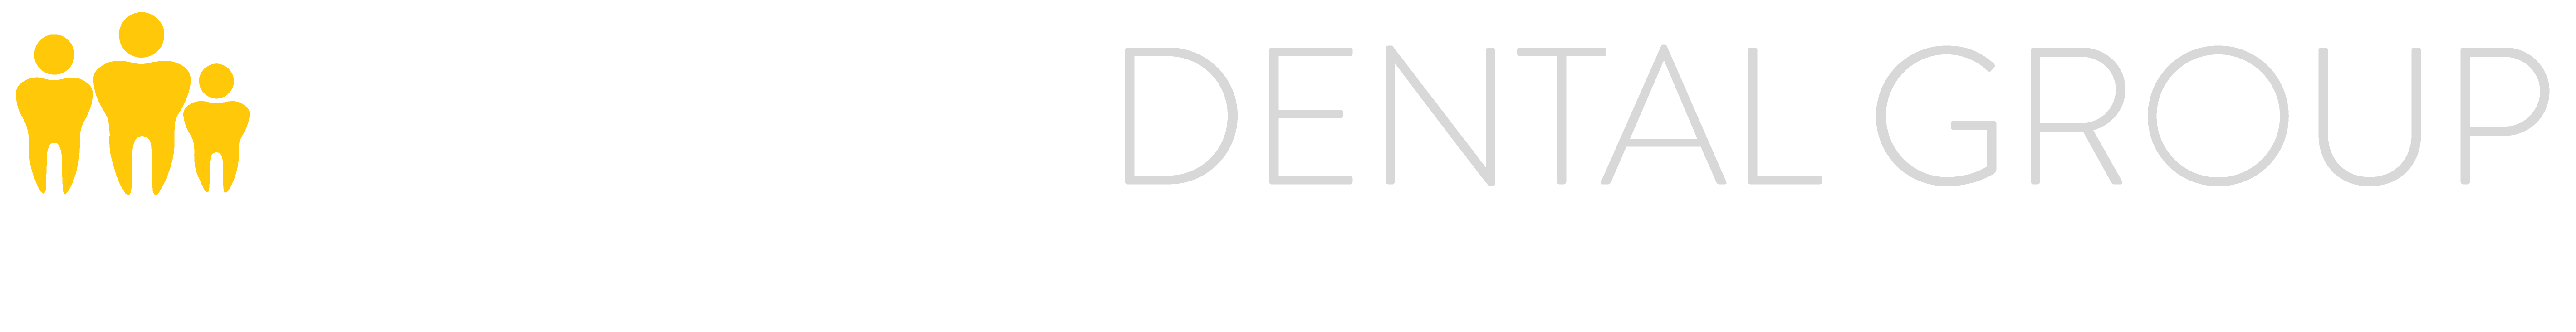 Turner Dental Group logo